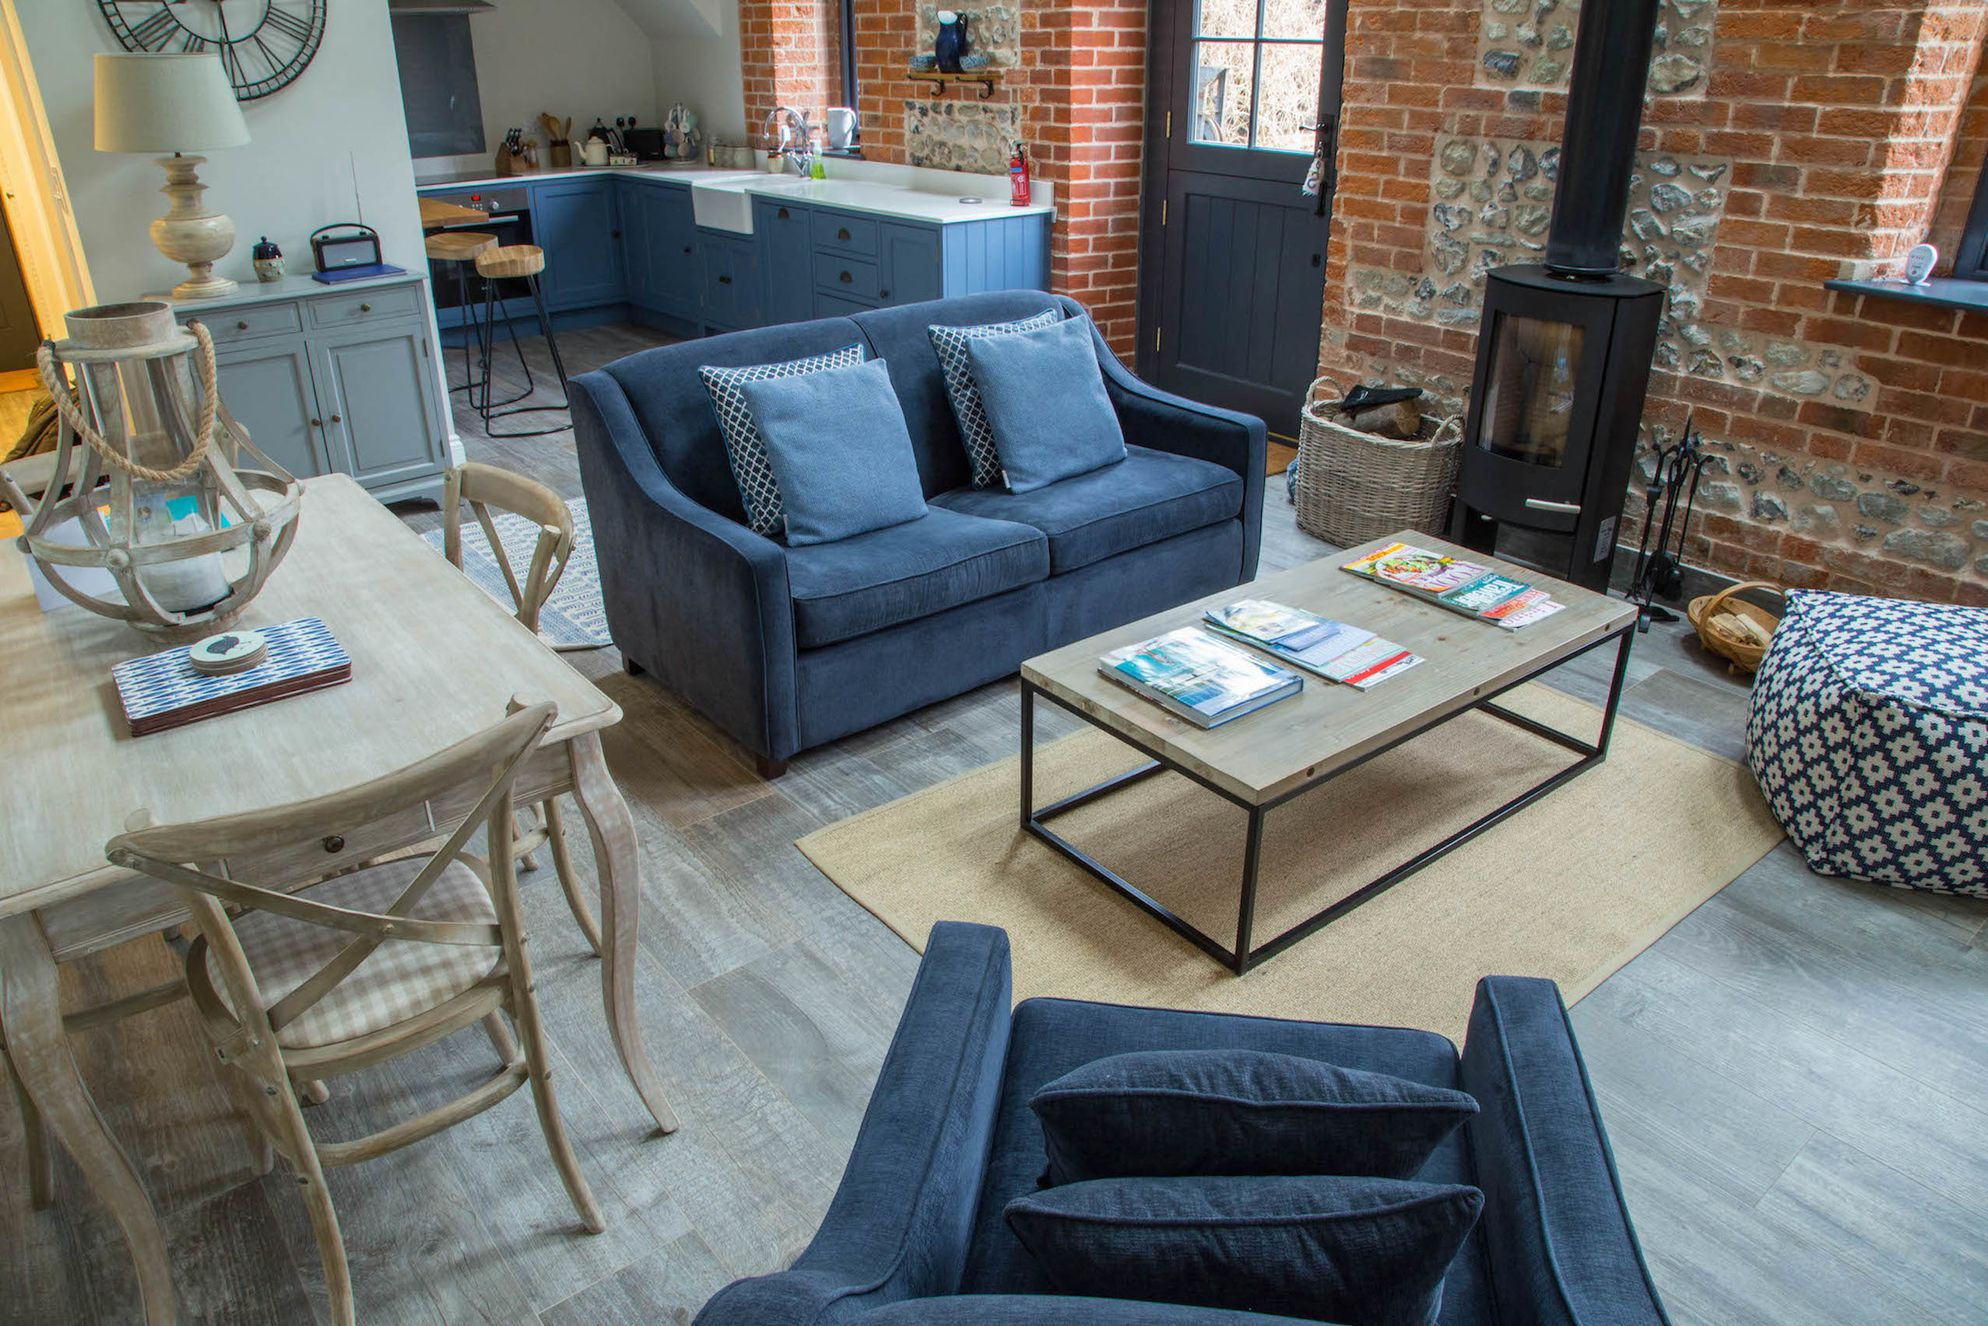 Open plan kitchen and dining area at The Stable with exposed brickwork, real wood burner and luxurious blue velvet sofas